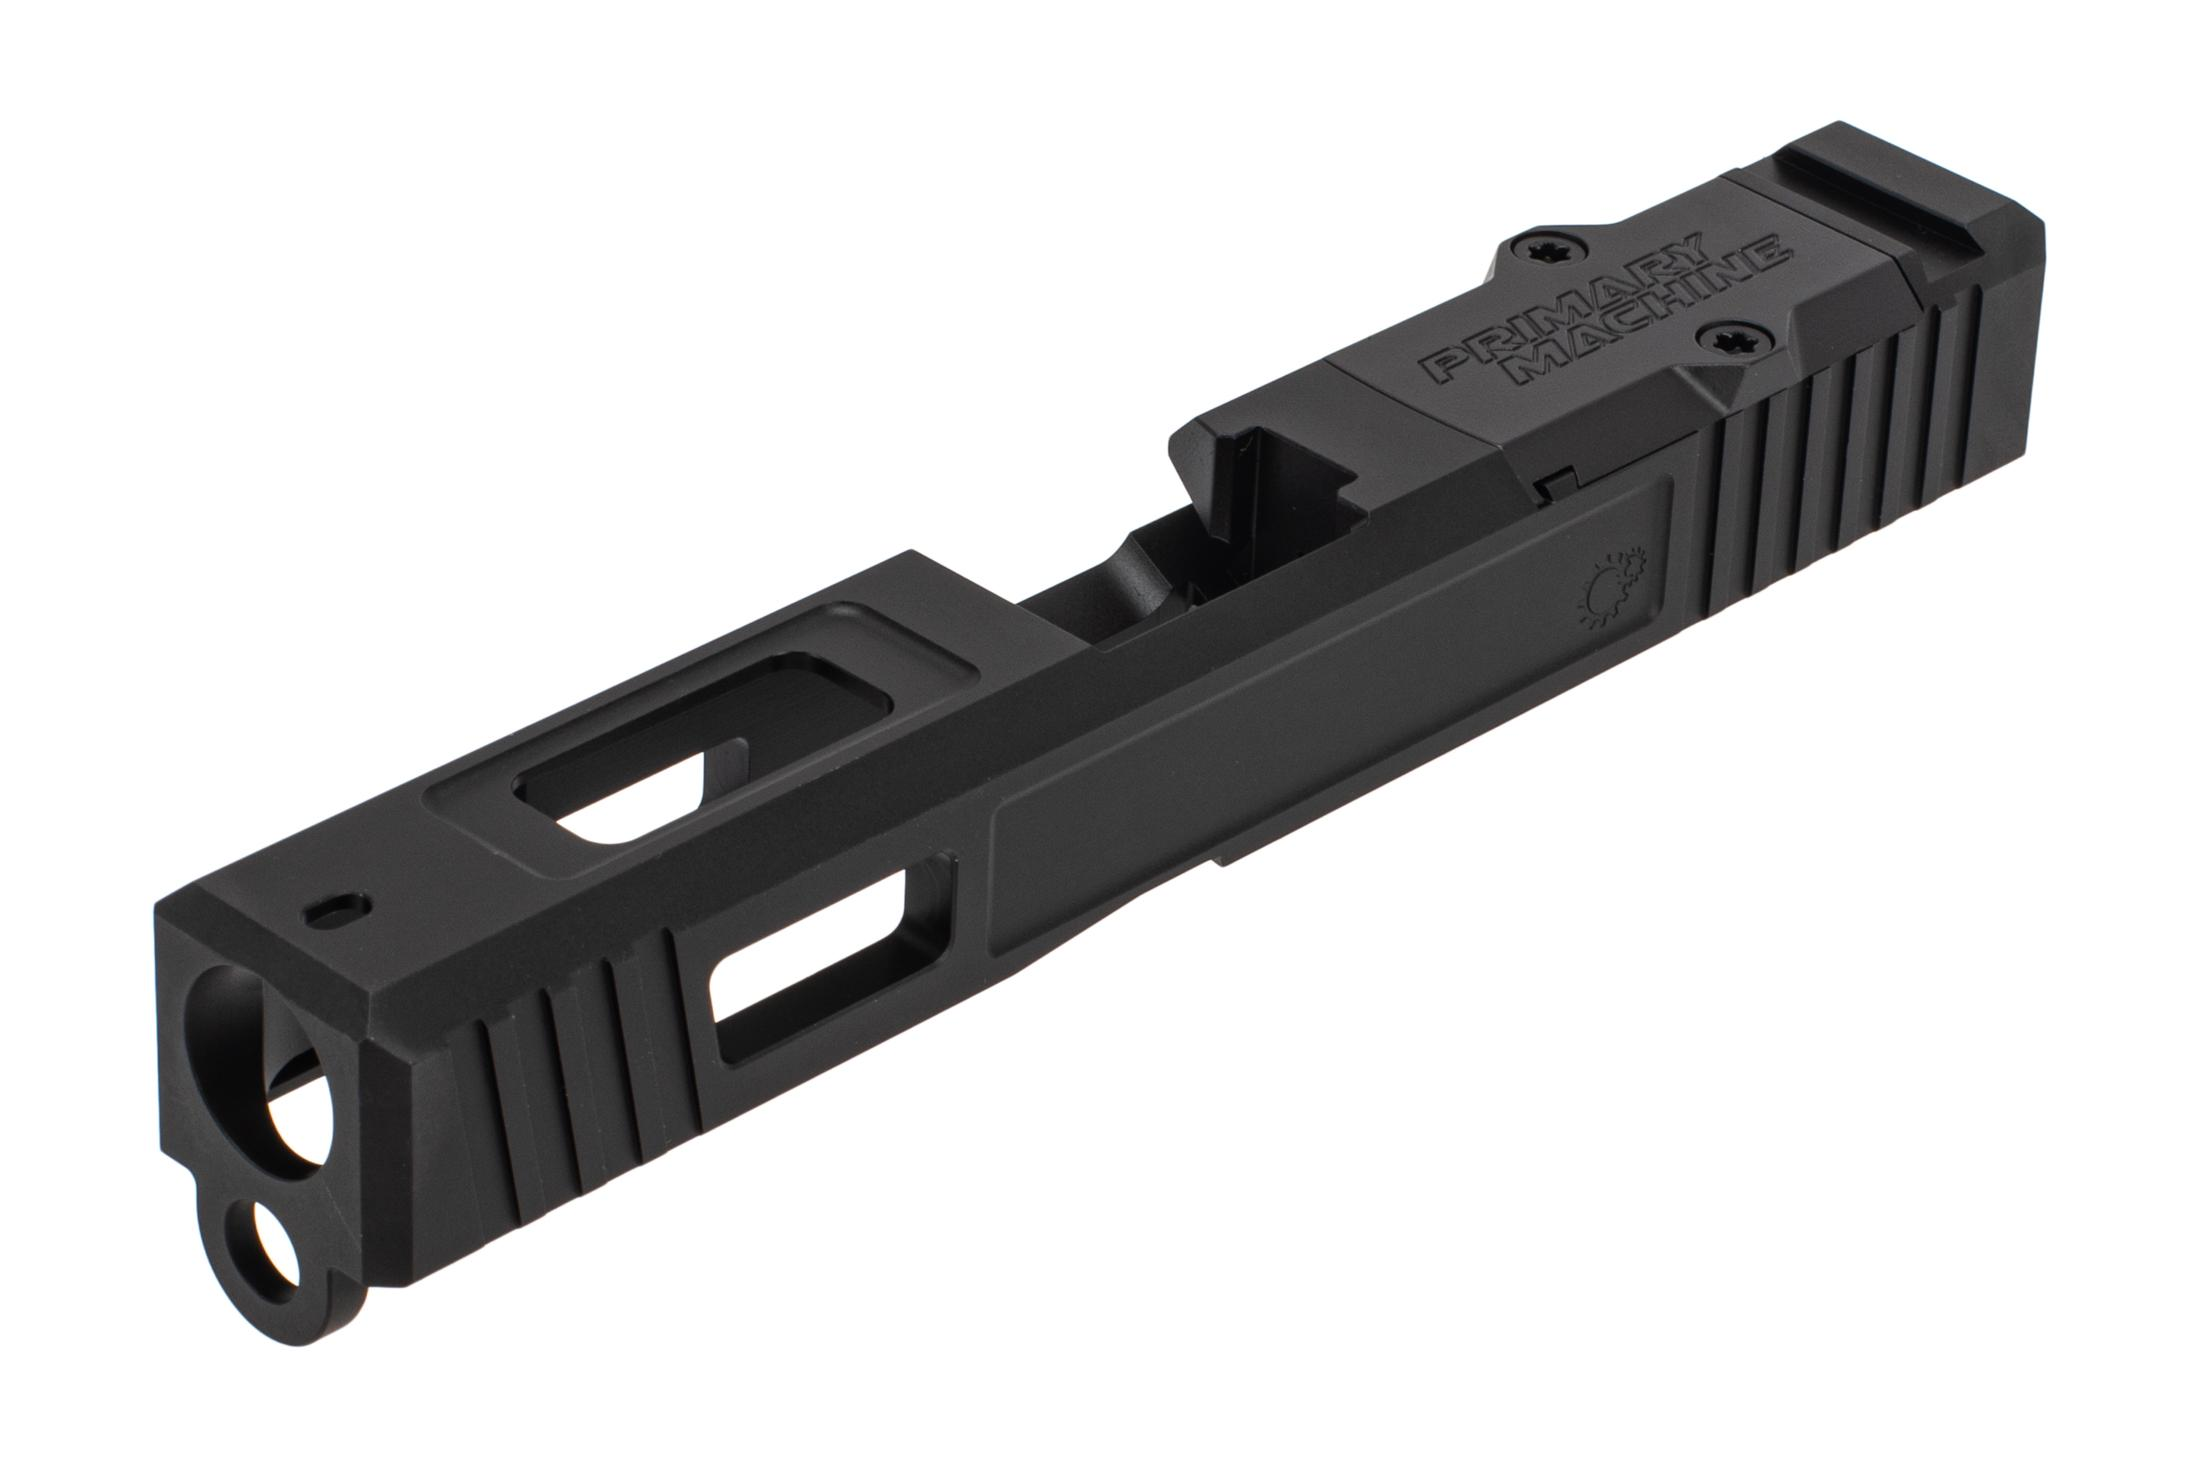 The Primary Machine G19 Slide Gen 3 features a black Nitride finish